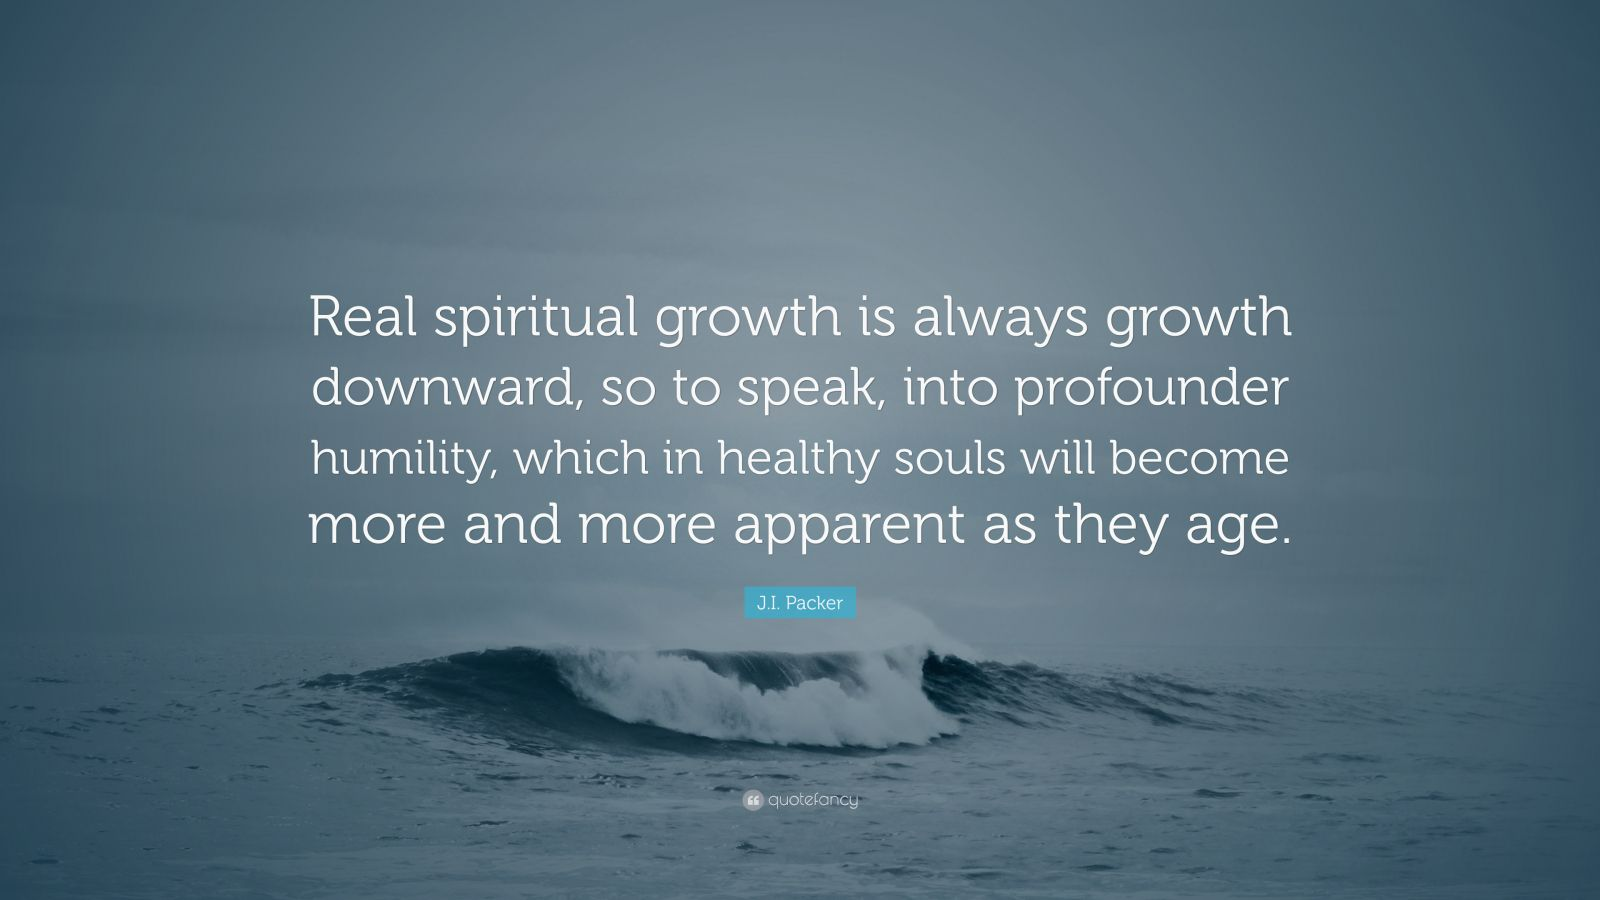 "J.I. Packer Quote: ""Real spiritual growth is always growth downward, so to speak, into profounder humility, which in healthy souls will become more and more apparent as they age."""